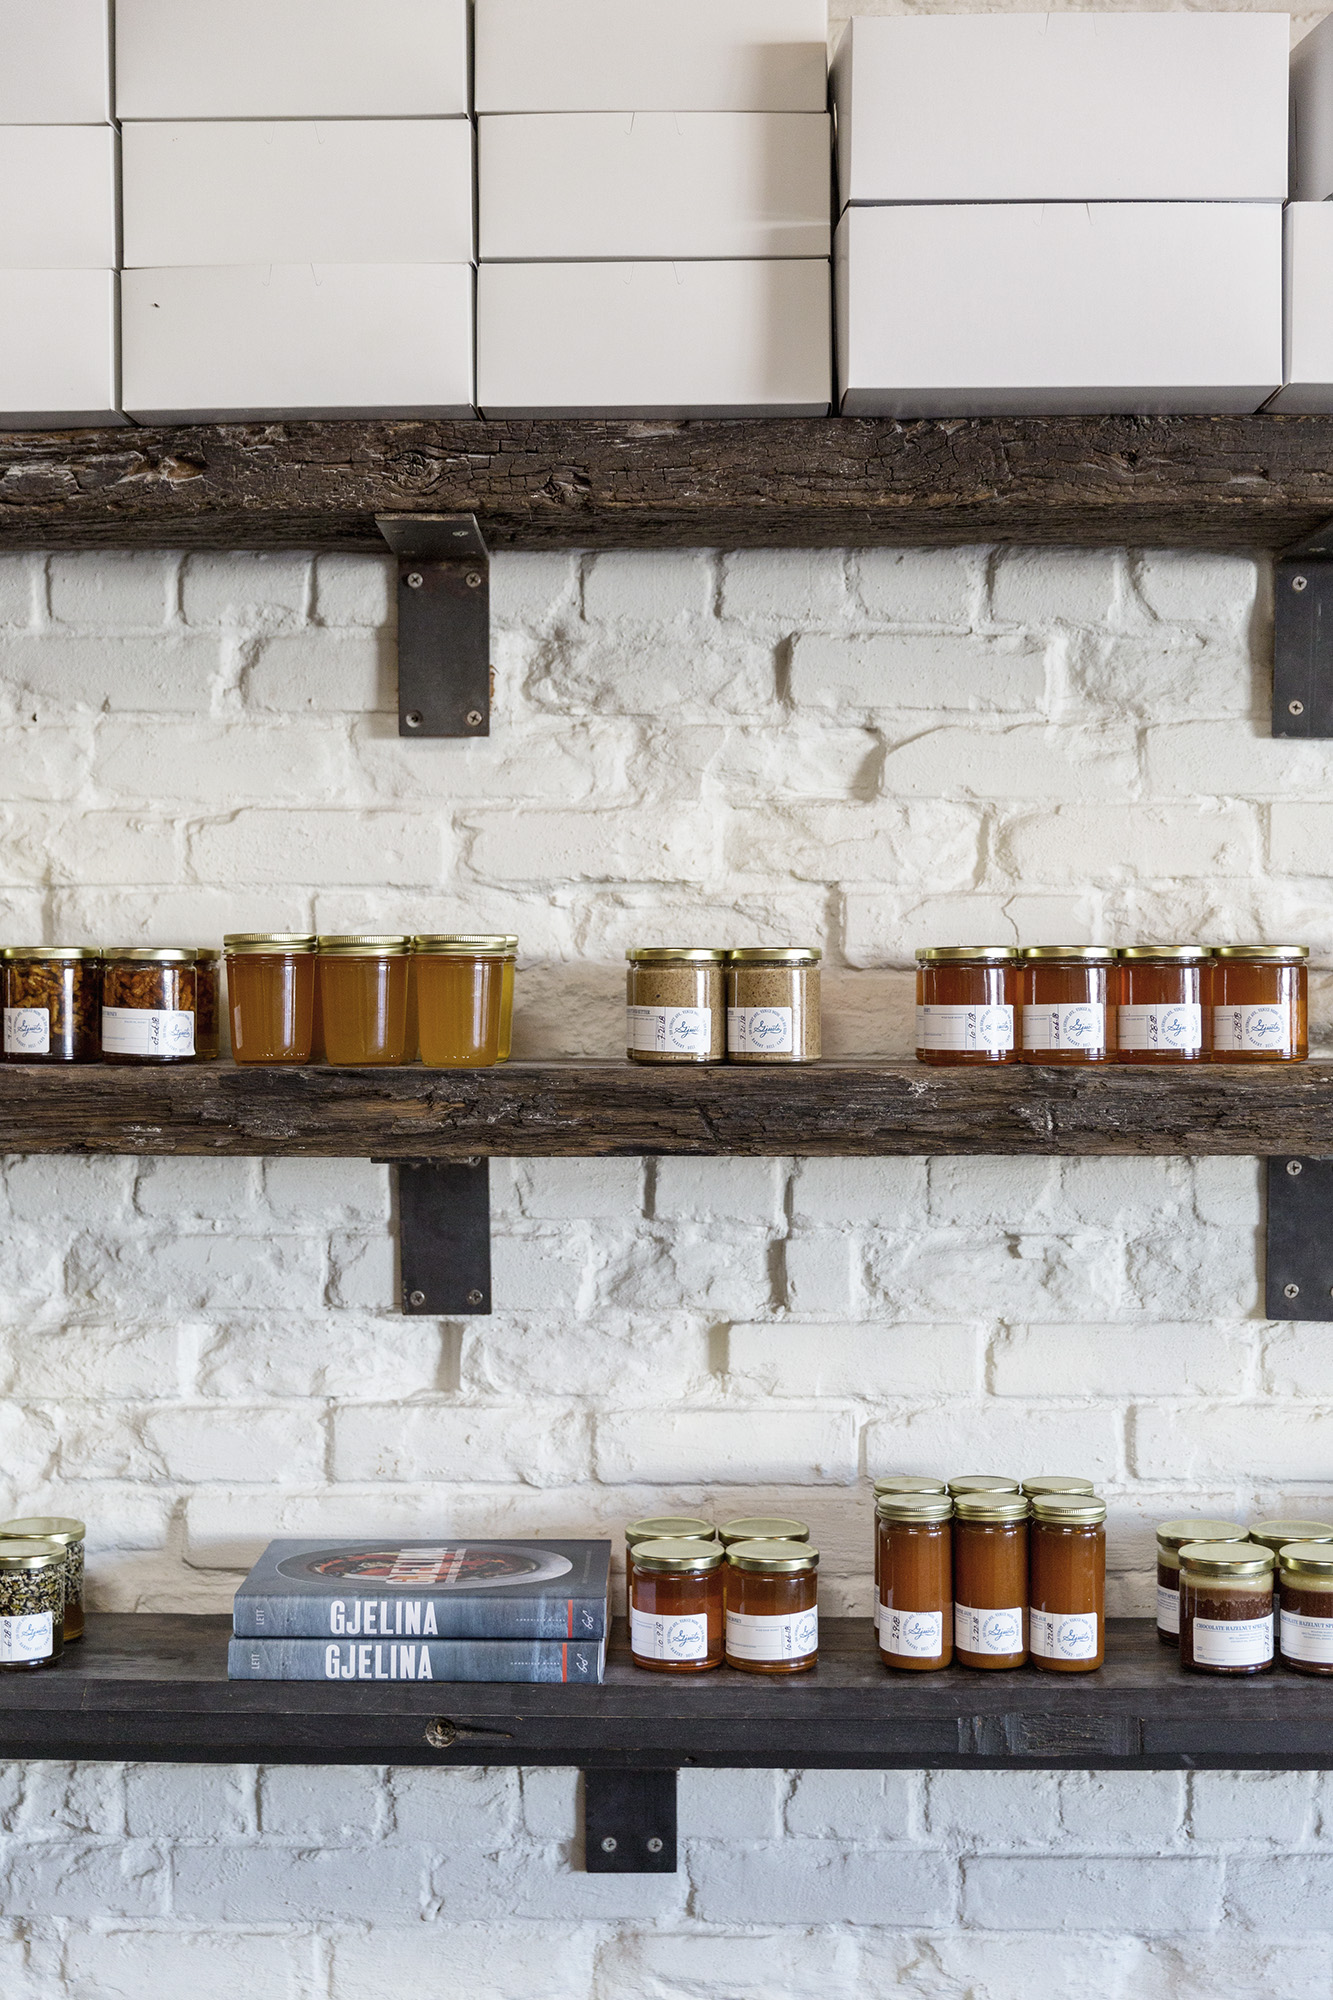 Jams and jars and sauces and things at Gjusta in Los Angeles by Rebecca Stumpf Colorado Denver Boulder Editorial and Commercial Travel Photographer